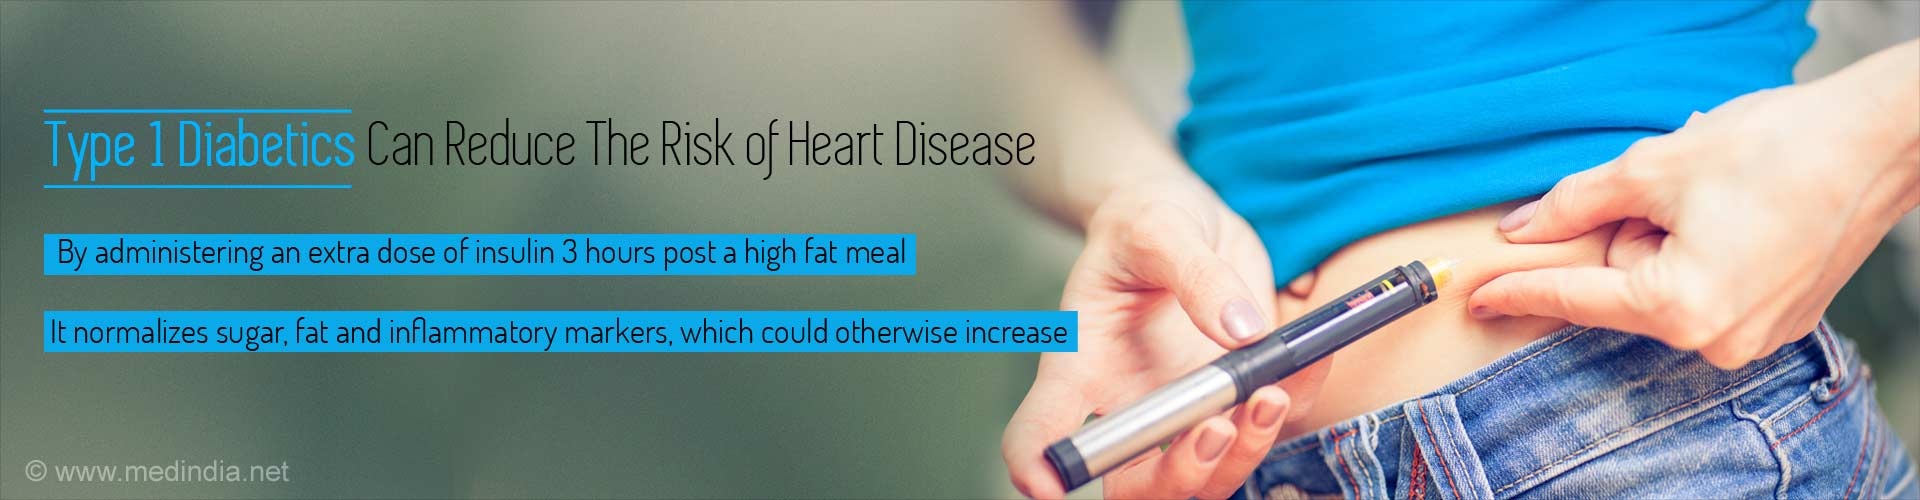 An Extra Dose of Insulin Post Meal Reduces Heart Disease Risk in Diabetics